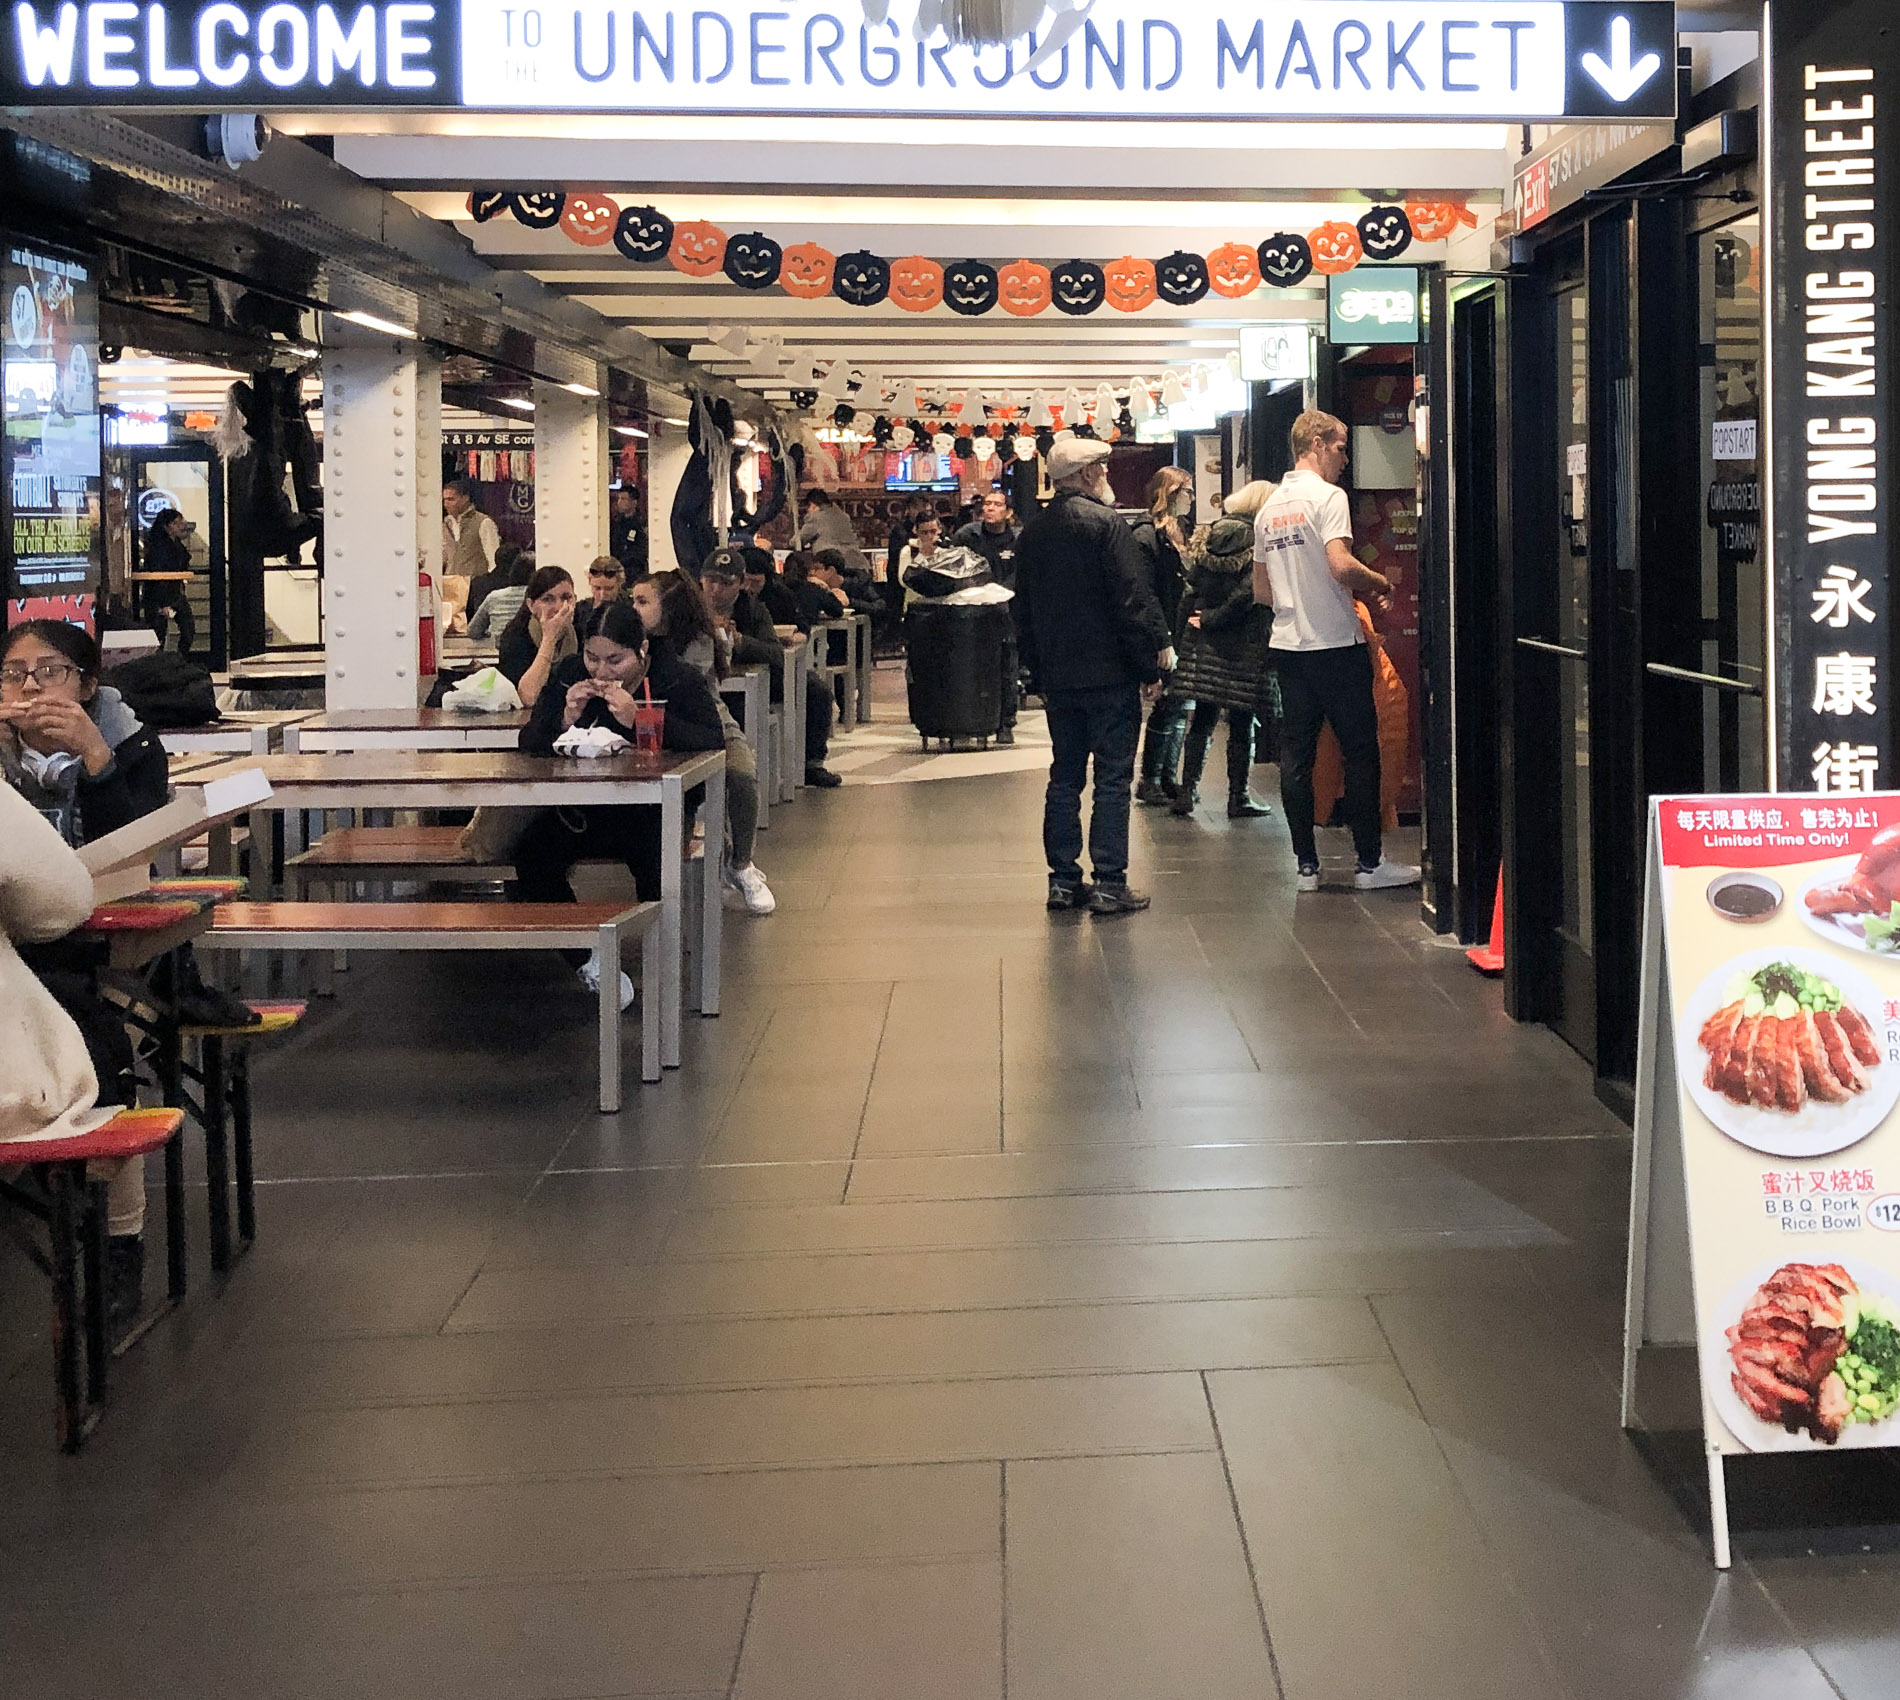 welcome-to-underground-market Turnstyle Underground Market, ce food court souterrain près de Central Park